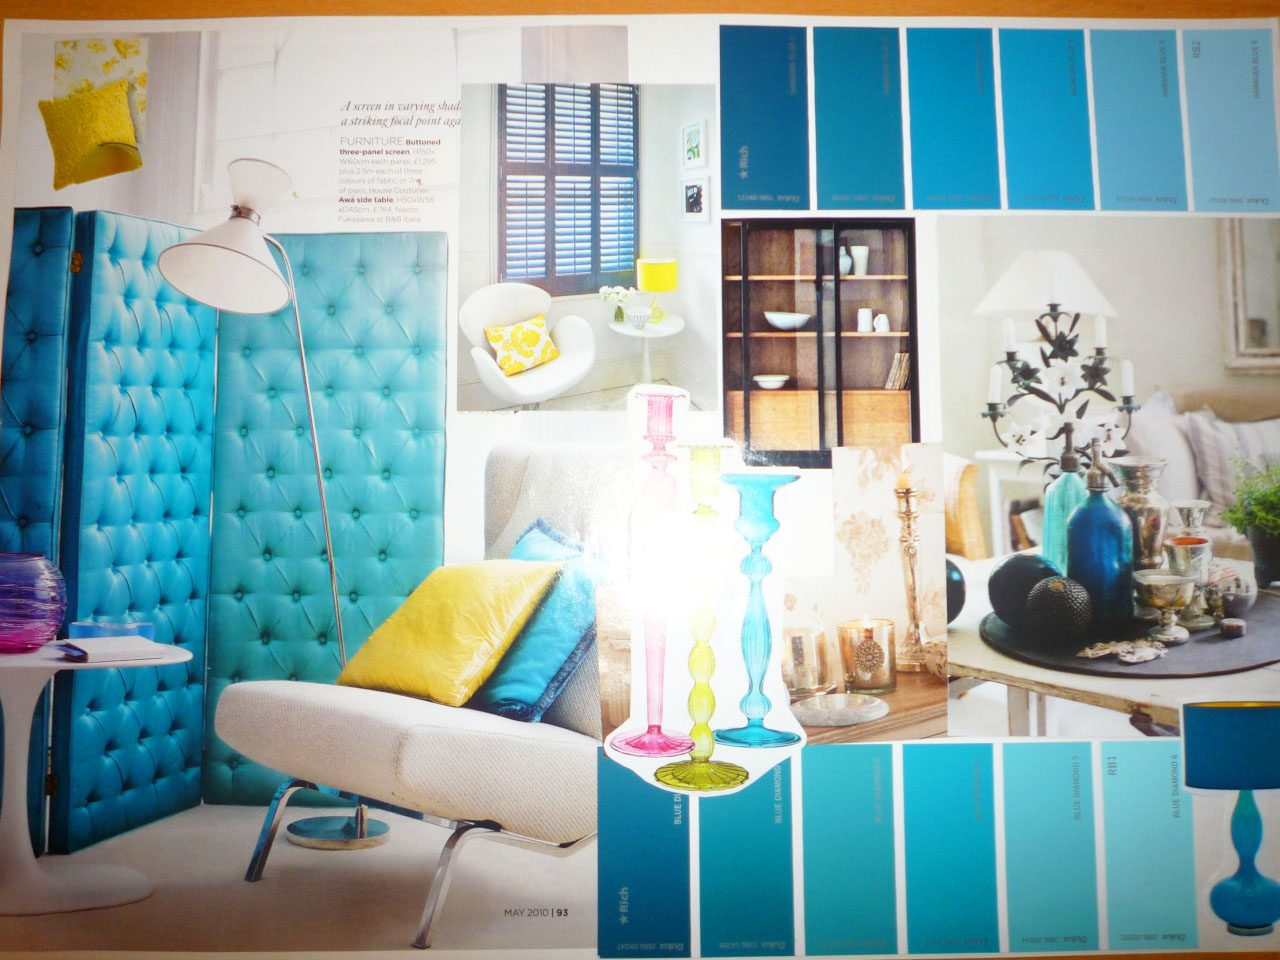 13 15 guildhall road mood boards 1 interior designer antonia lowe Bathroom design leamington spa